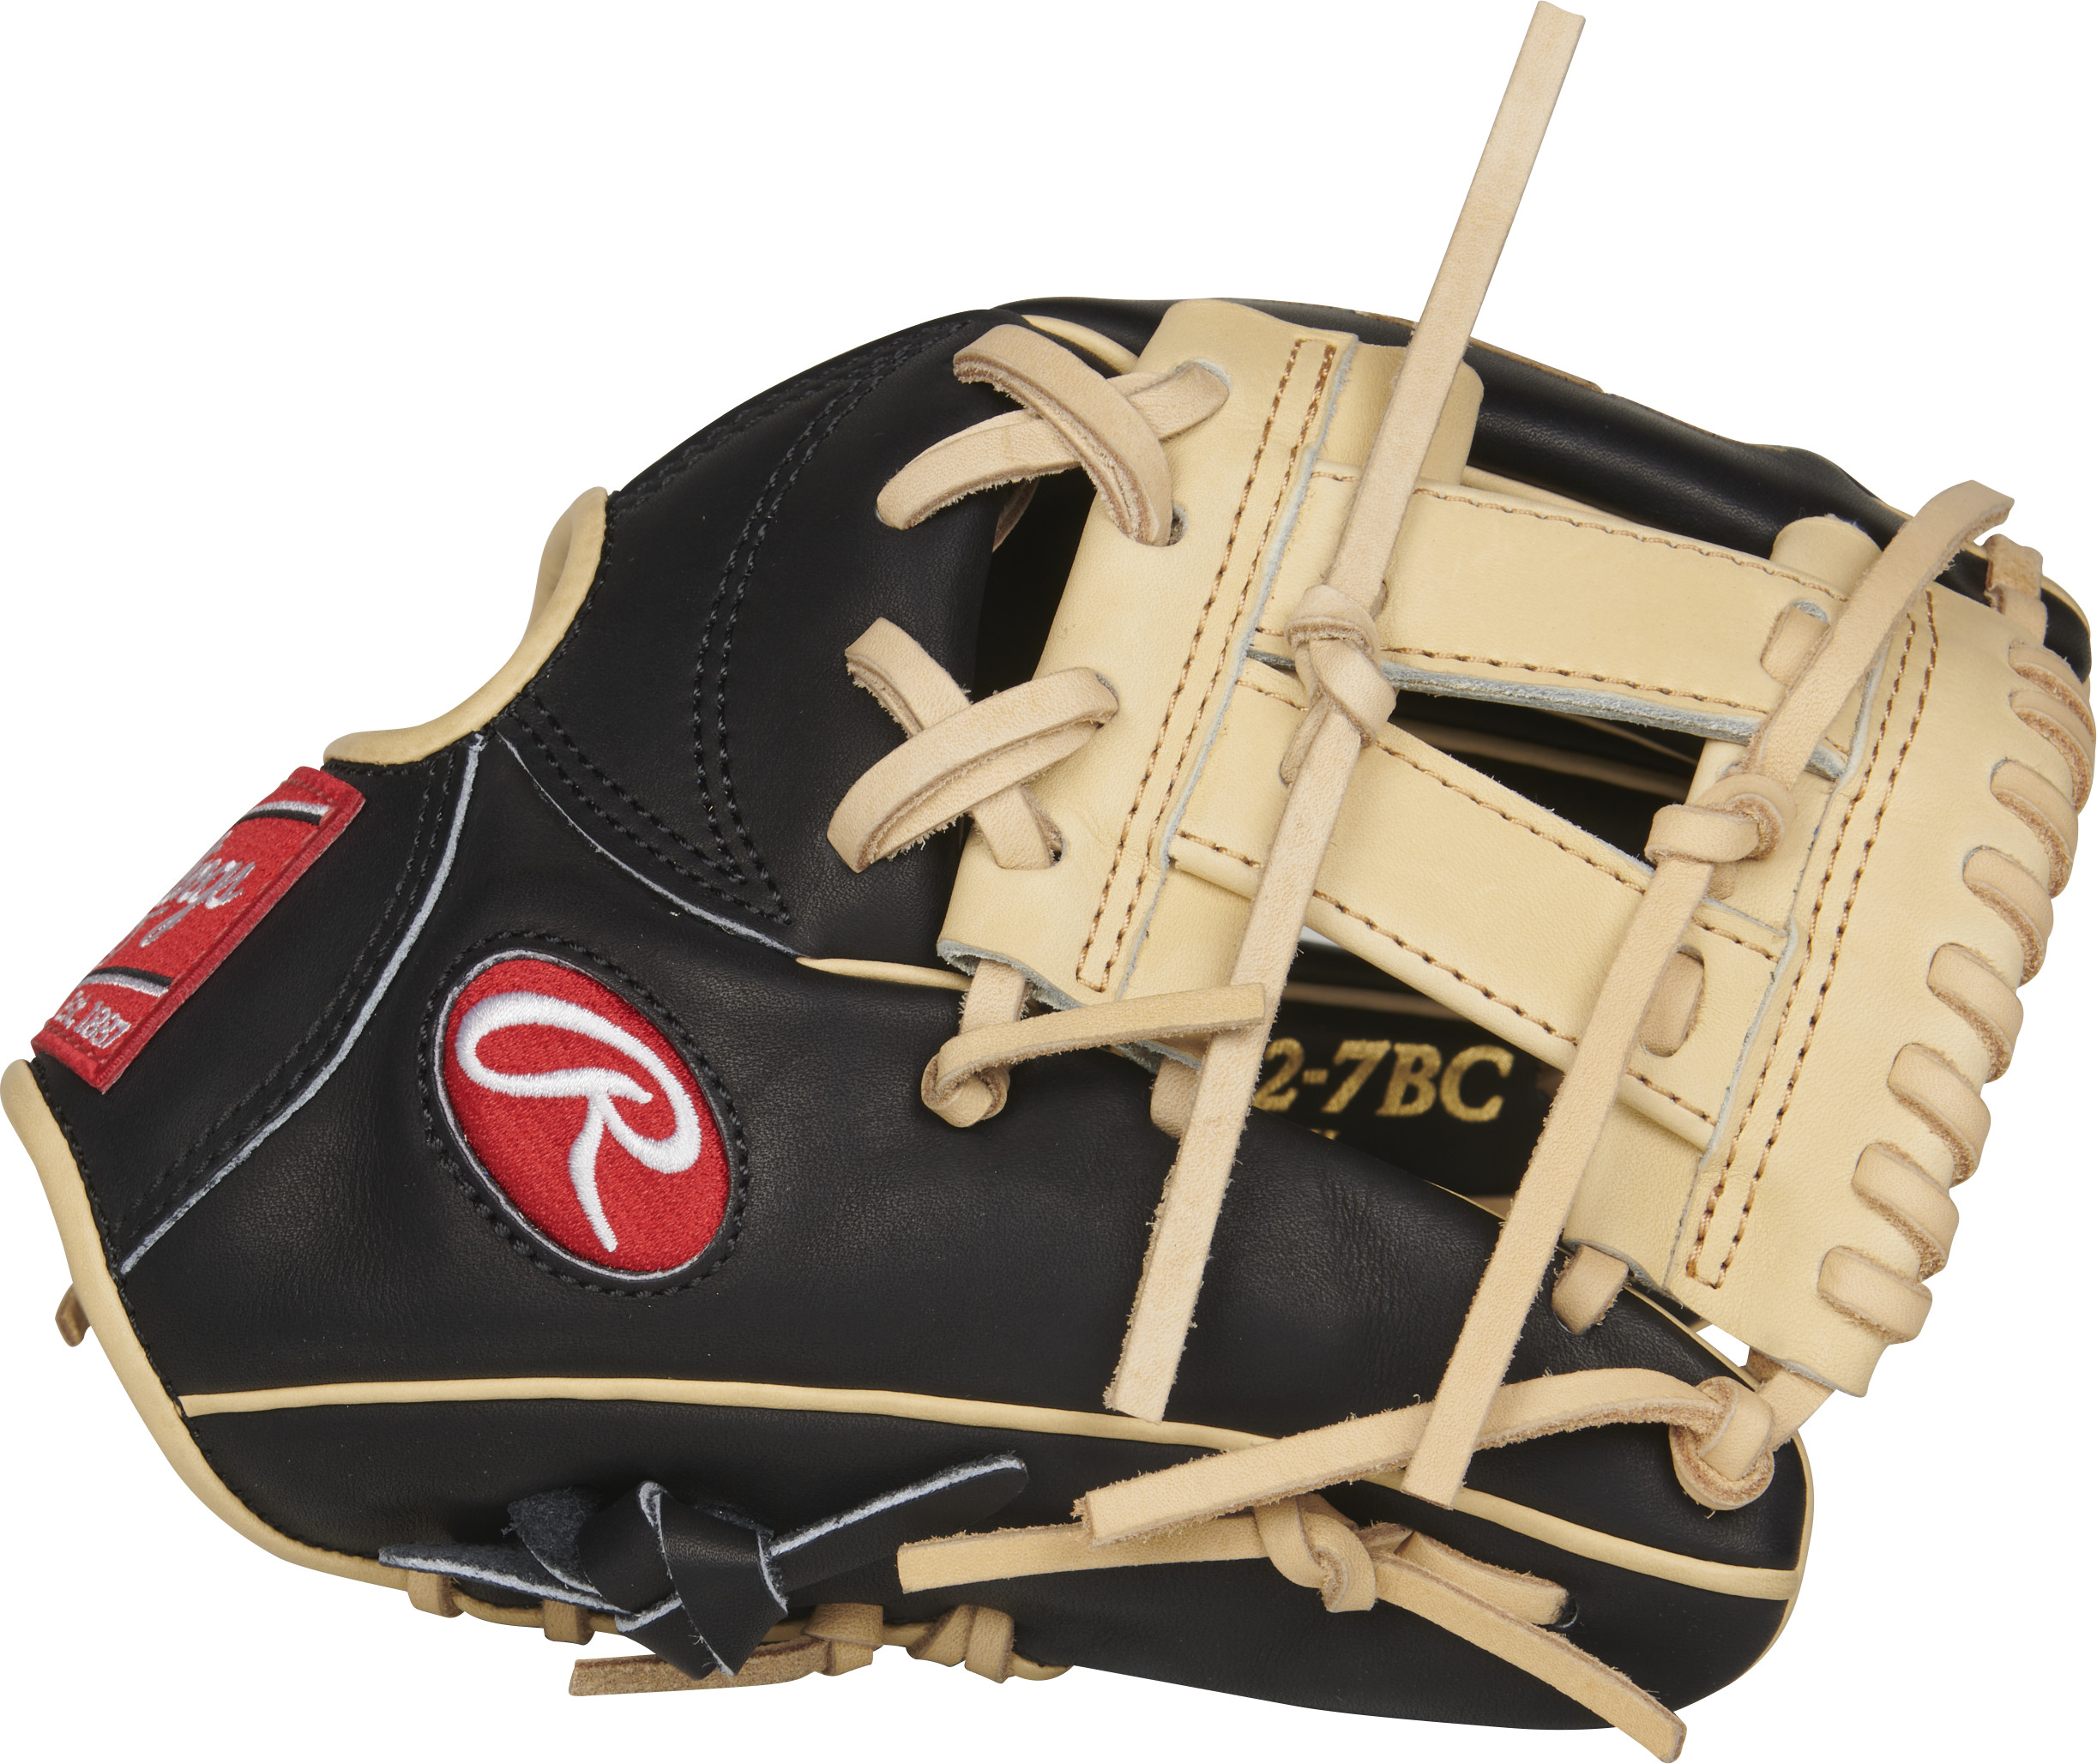 http://www.bestbatdeals.com/images/gloves/rawlings/PROR882-7BC-3.jpg